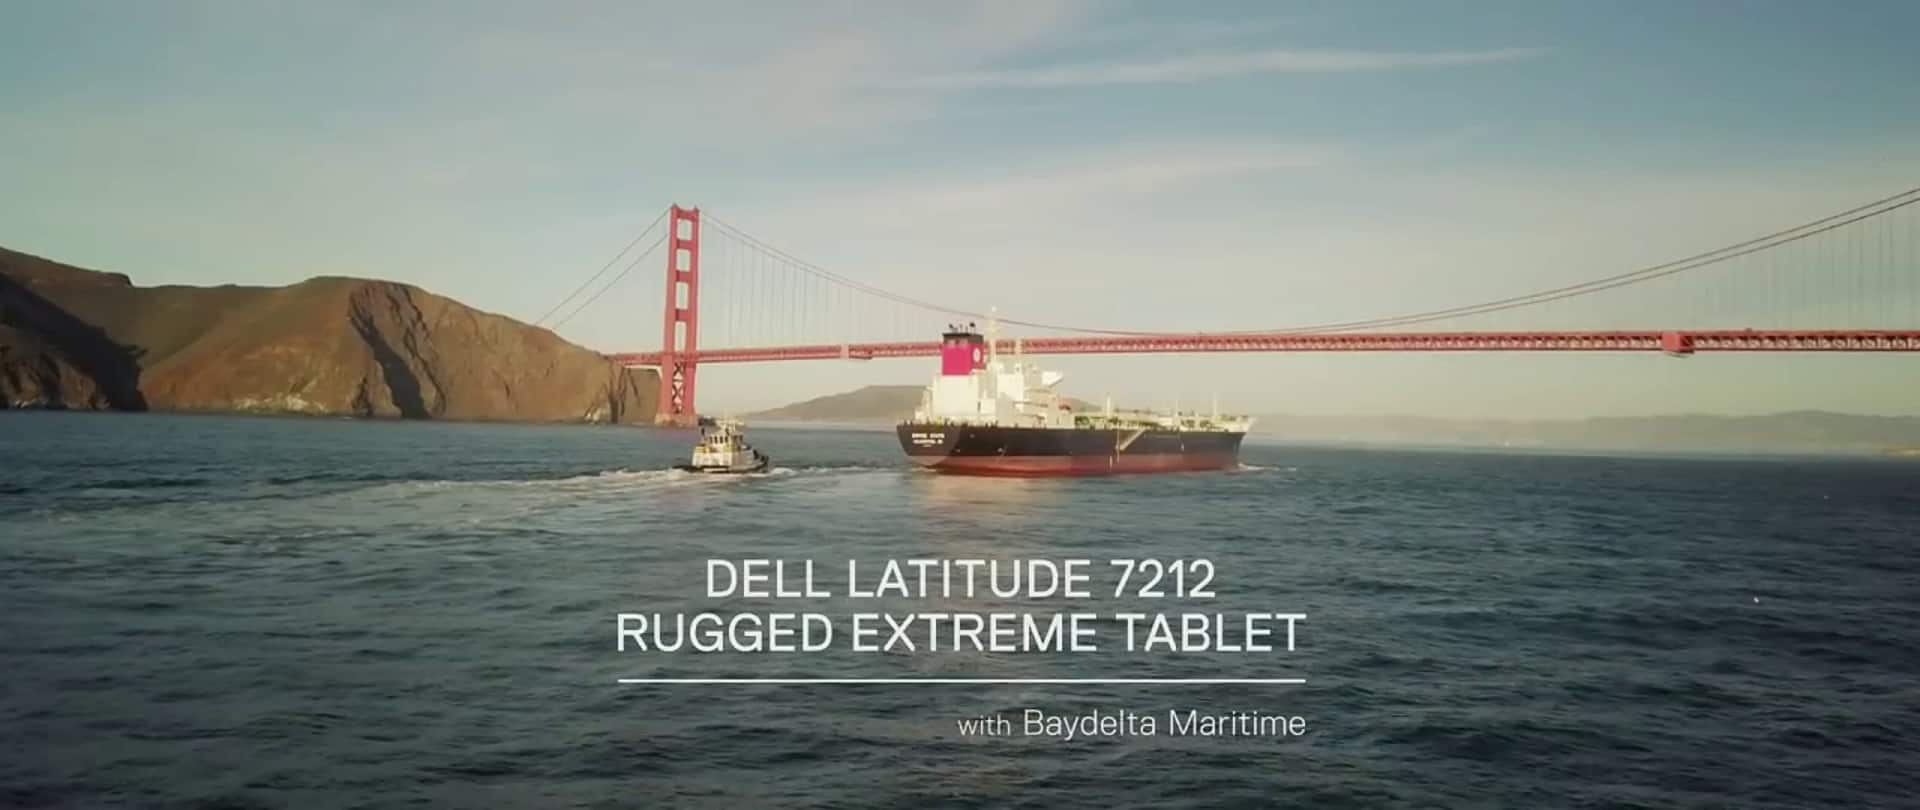 Latitude 7212 Rugged Extreme Tablet and Baydelta Maritime